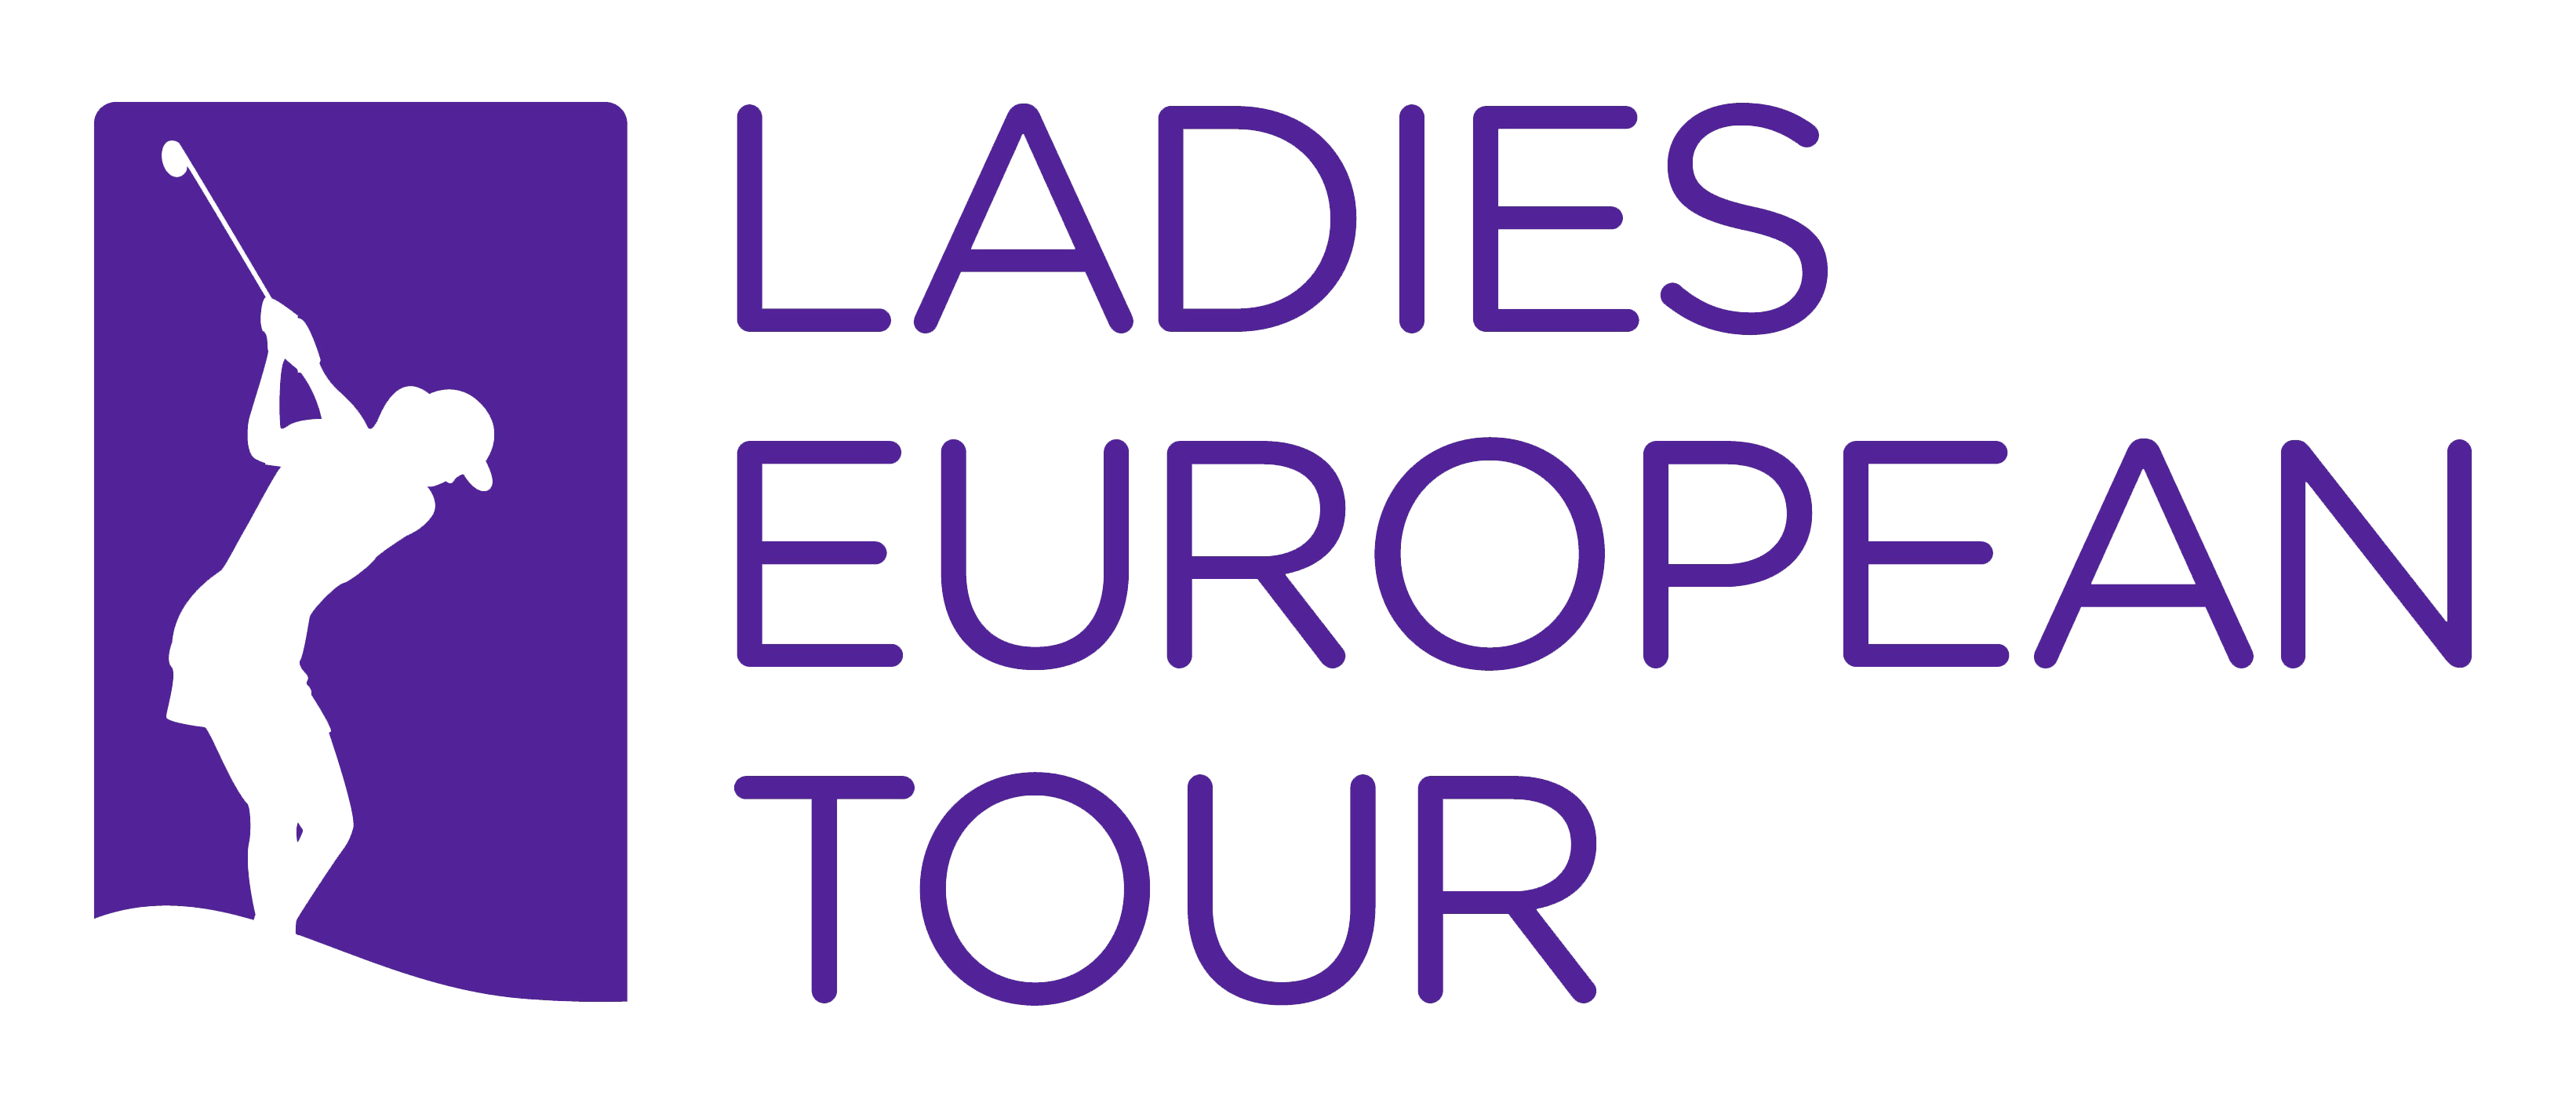 Ladies European Tour